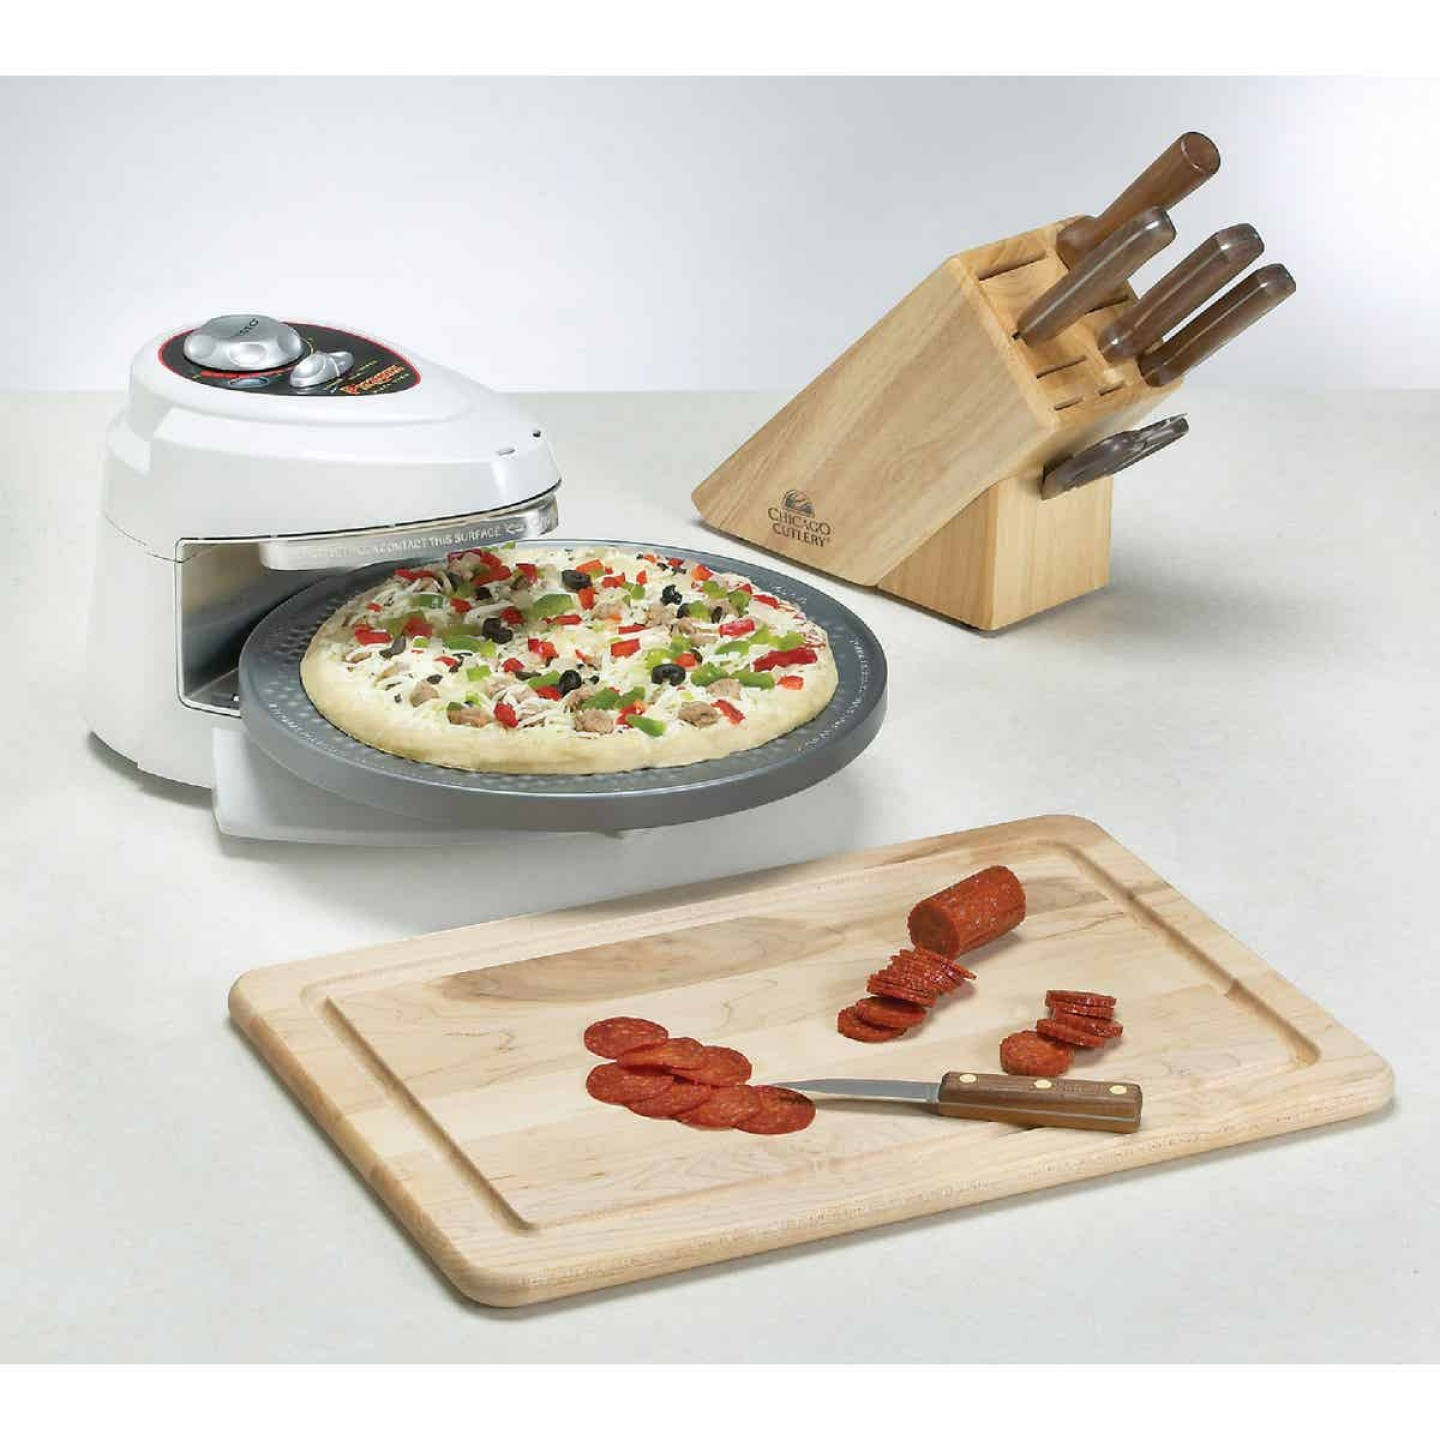 Presto Pizzazz Electric Pizza Maker Image 3